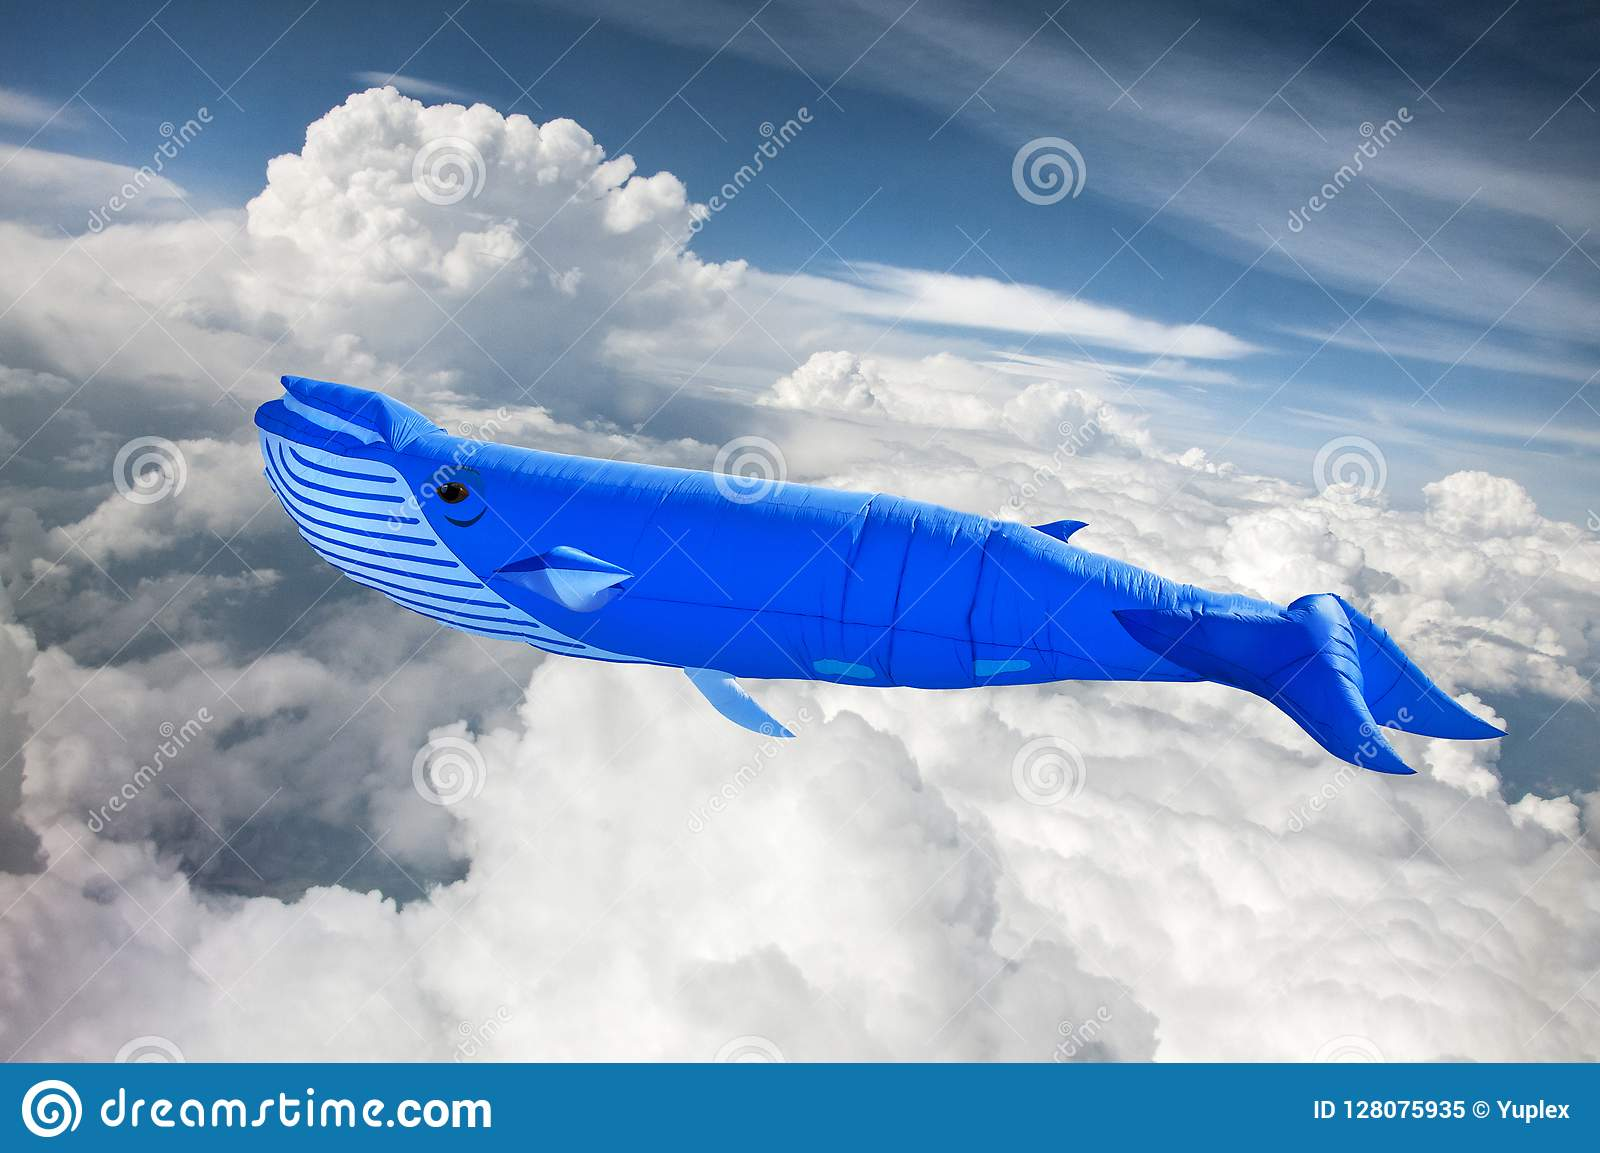 The blue whale in the sky